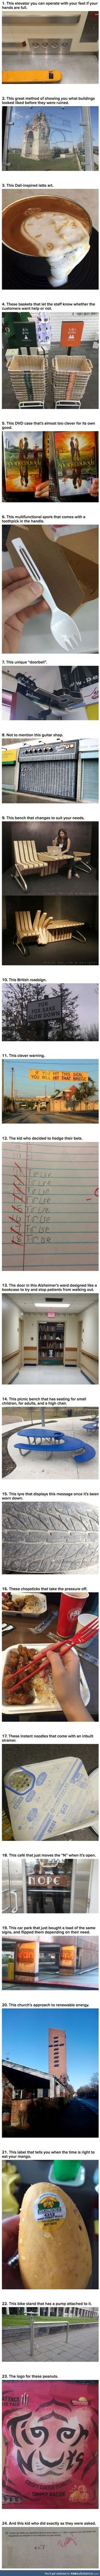 Clever humans